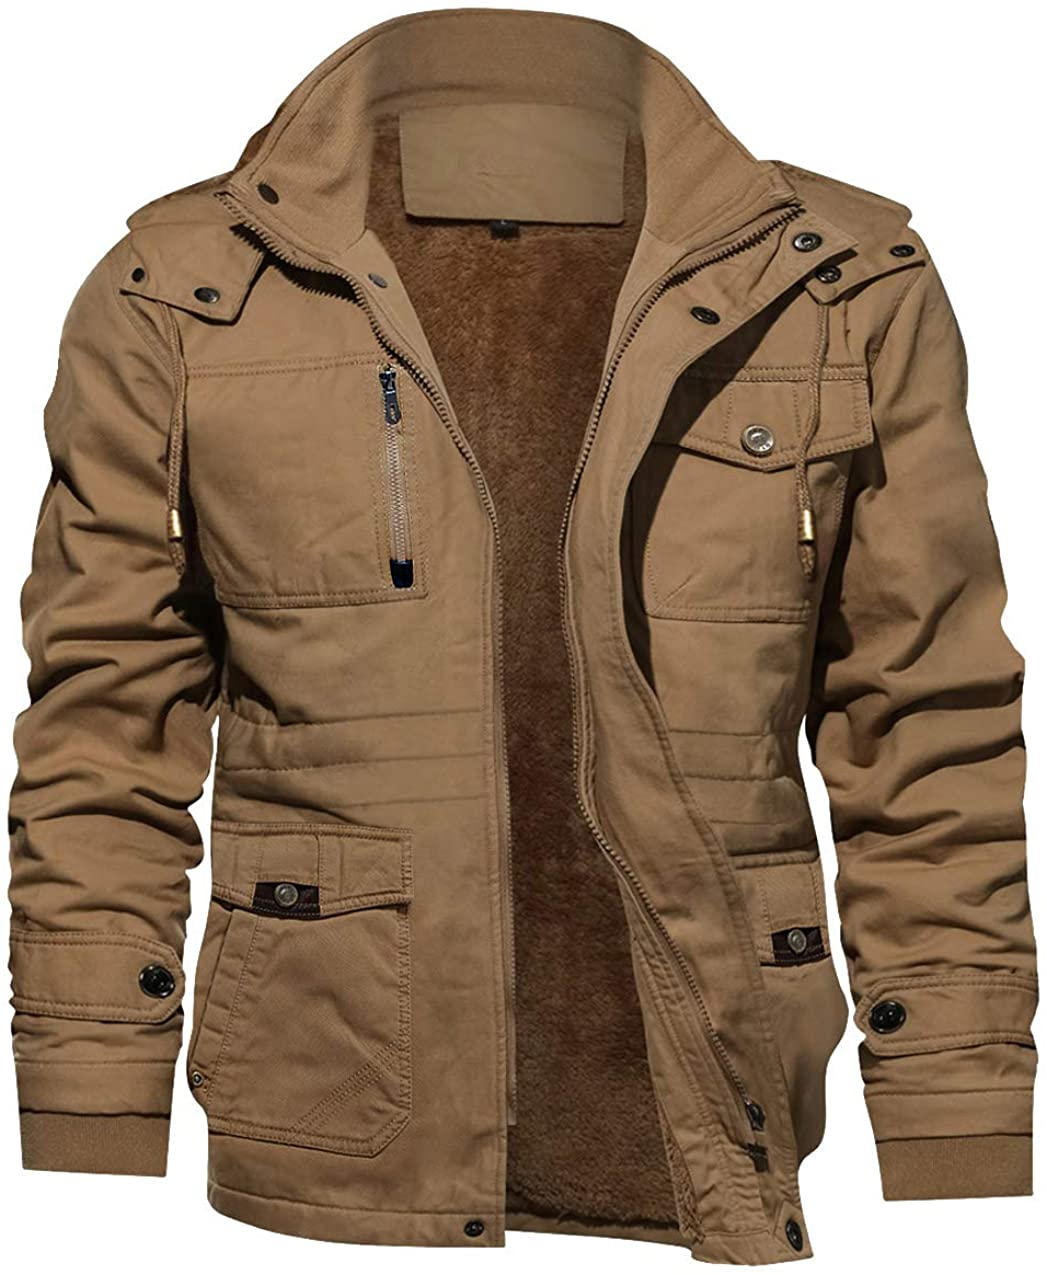 TACVASEN Men's Jacket-Casual Winter Cotton Recommendation Thick Jacket Some reservation Military